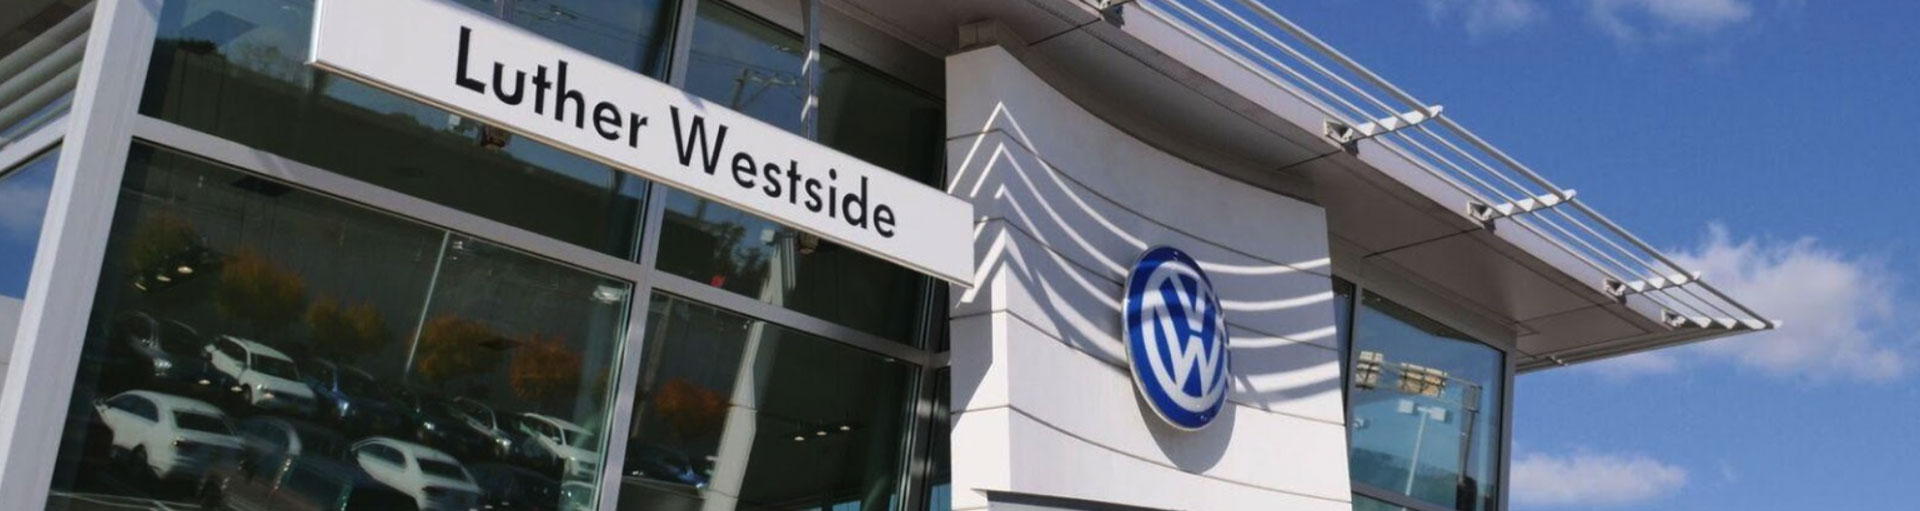 Luther Westside Volkswagen Service Department